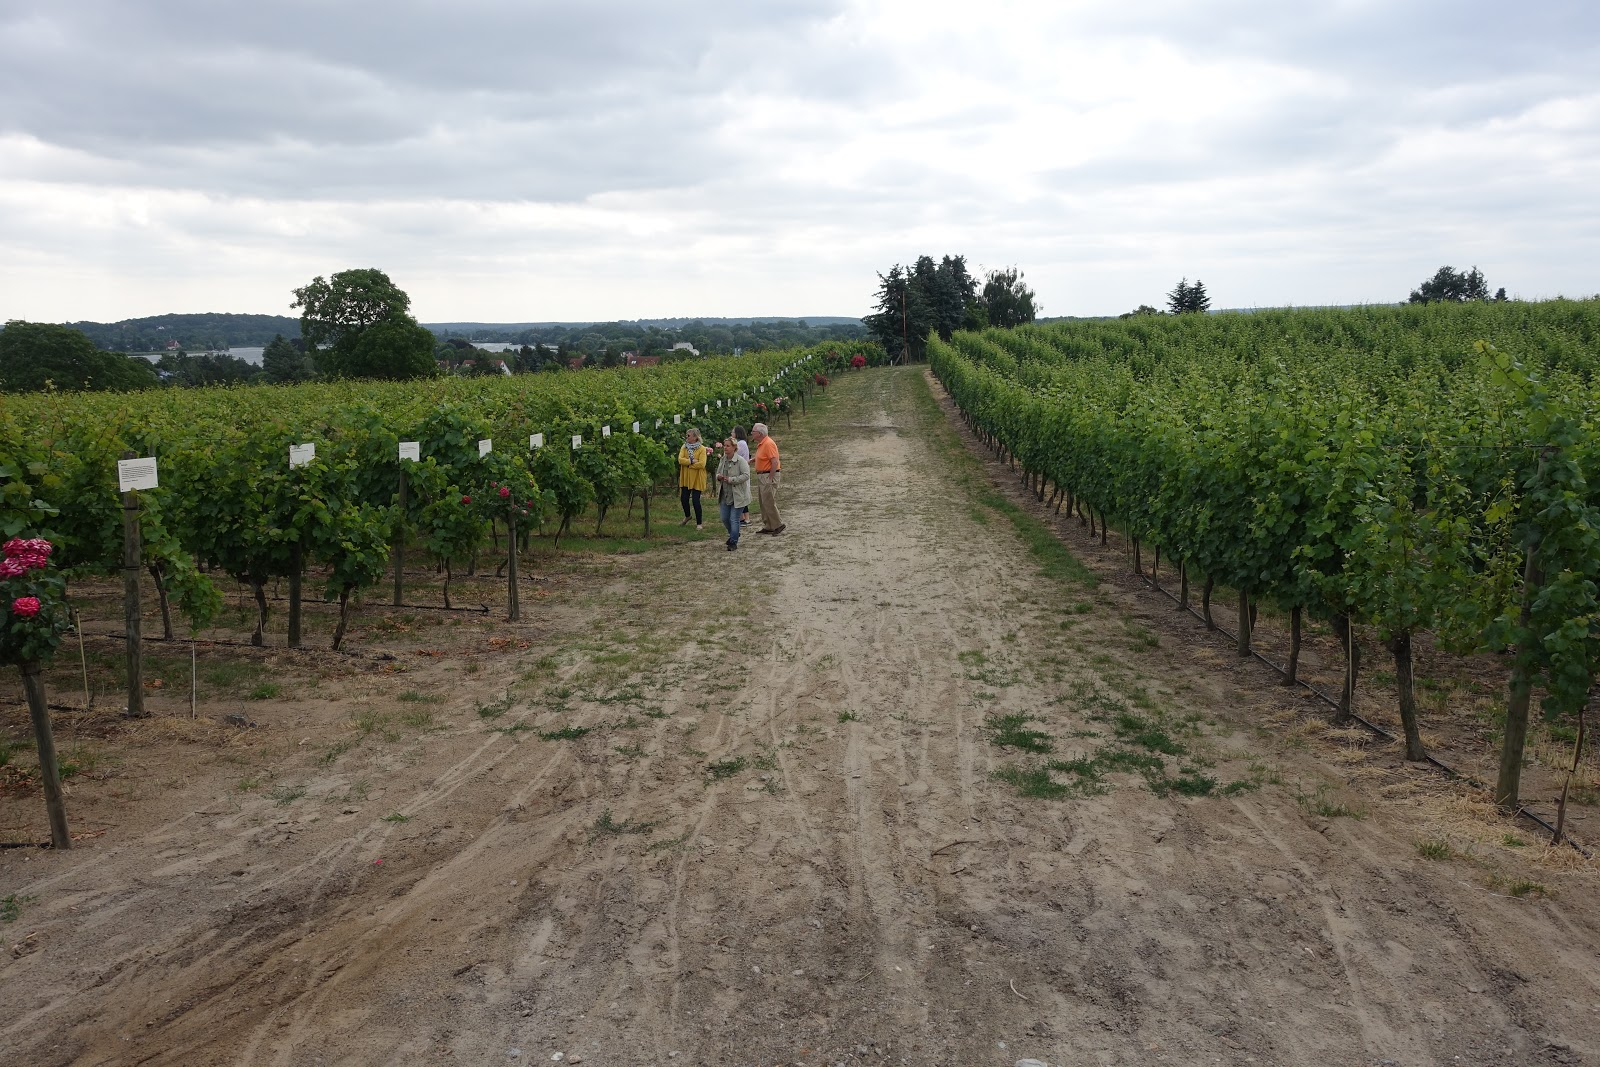 Schiller Wine Vineyard Tour And Tasting At Weingut Dr Lindicke In